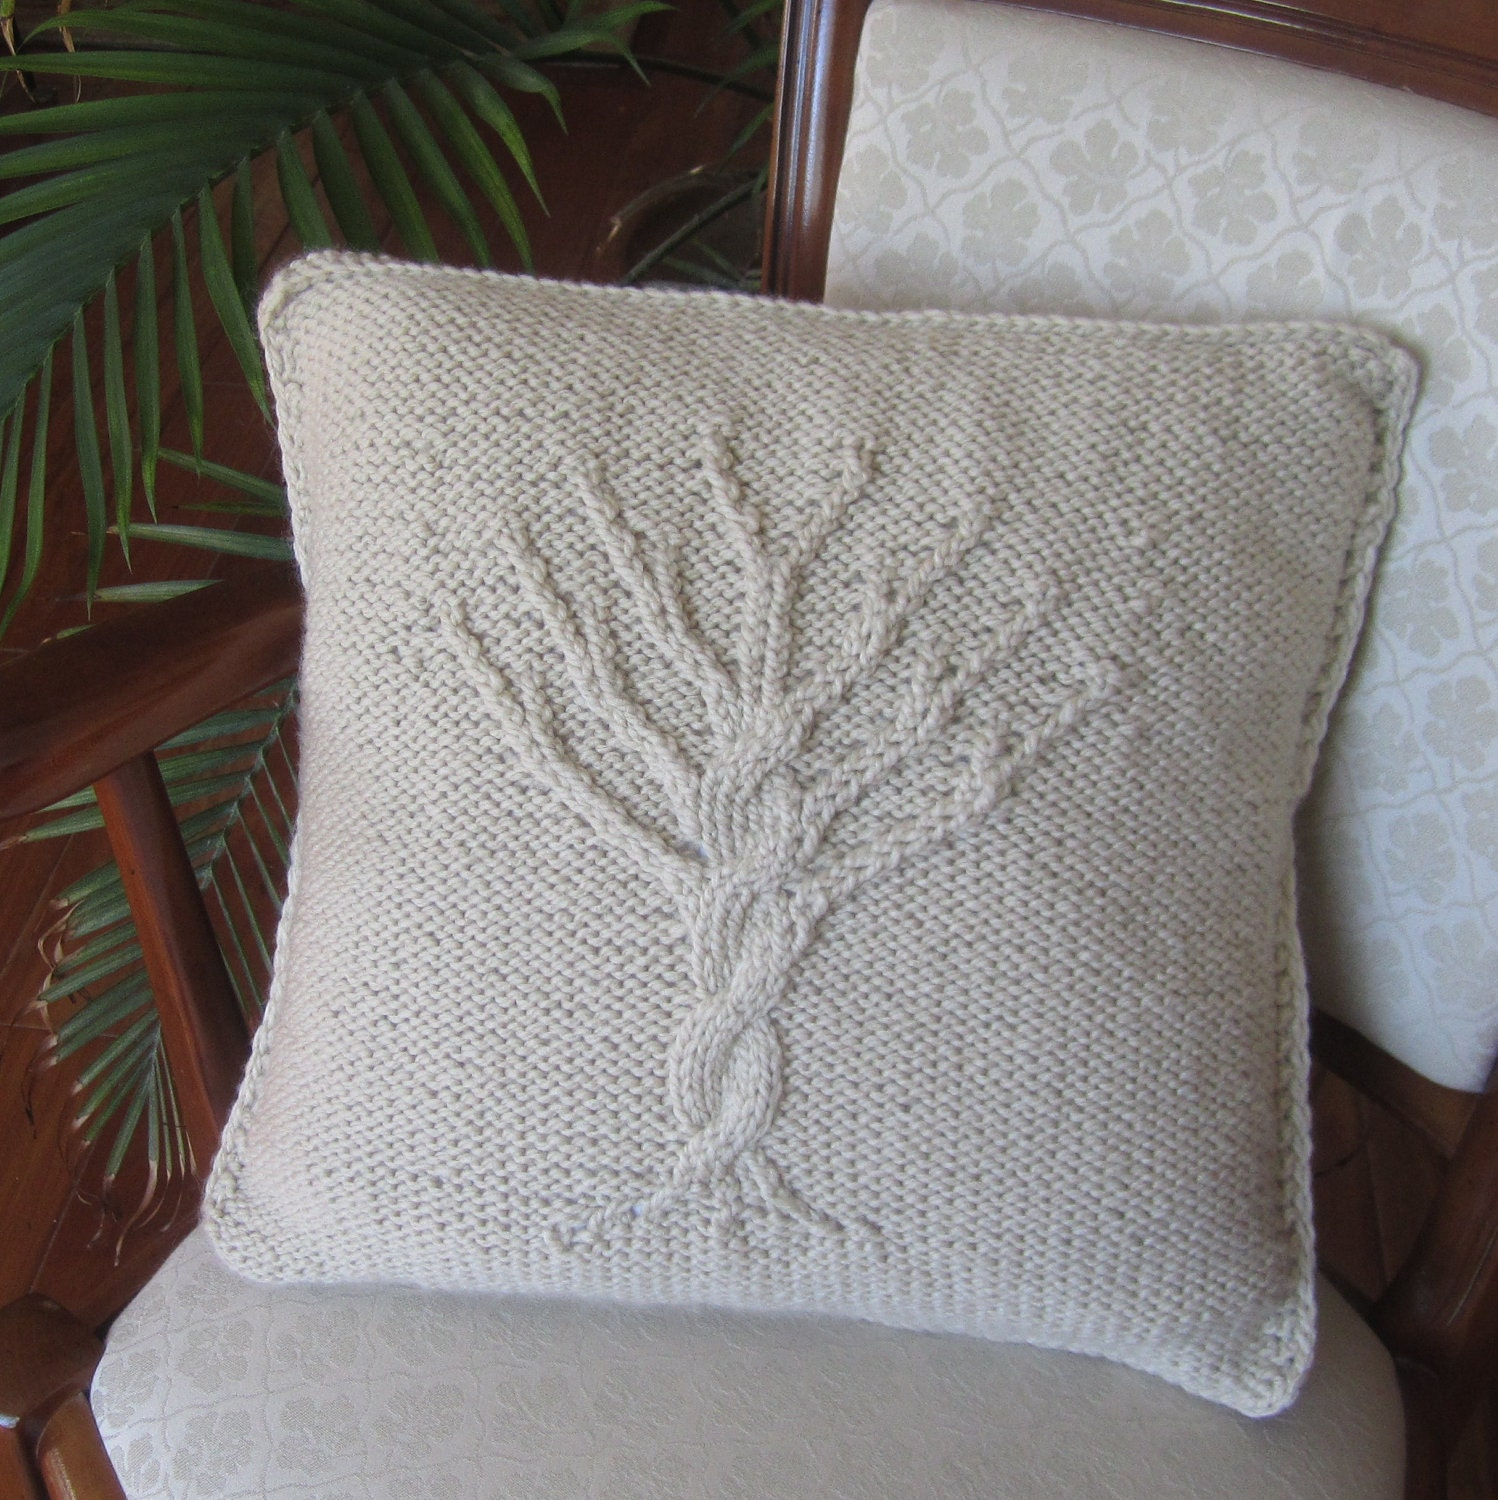 Knitting Pillow Cover : Tree of life hand knit pillow cover by ladyshipdesigns on etsy